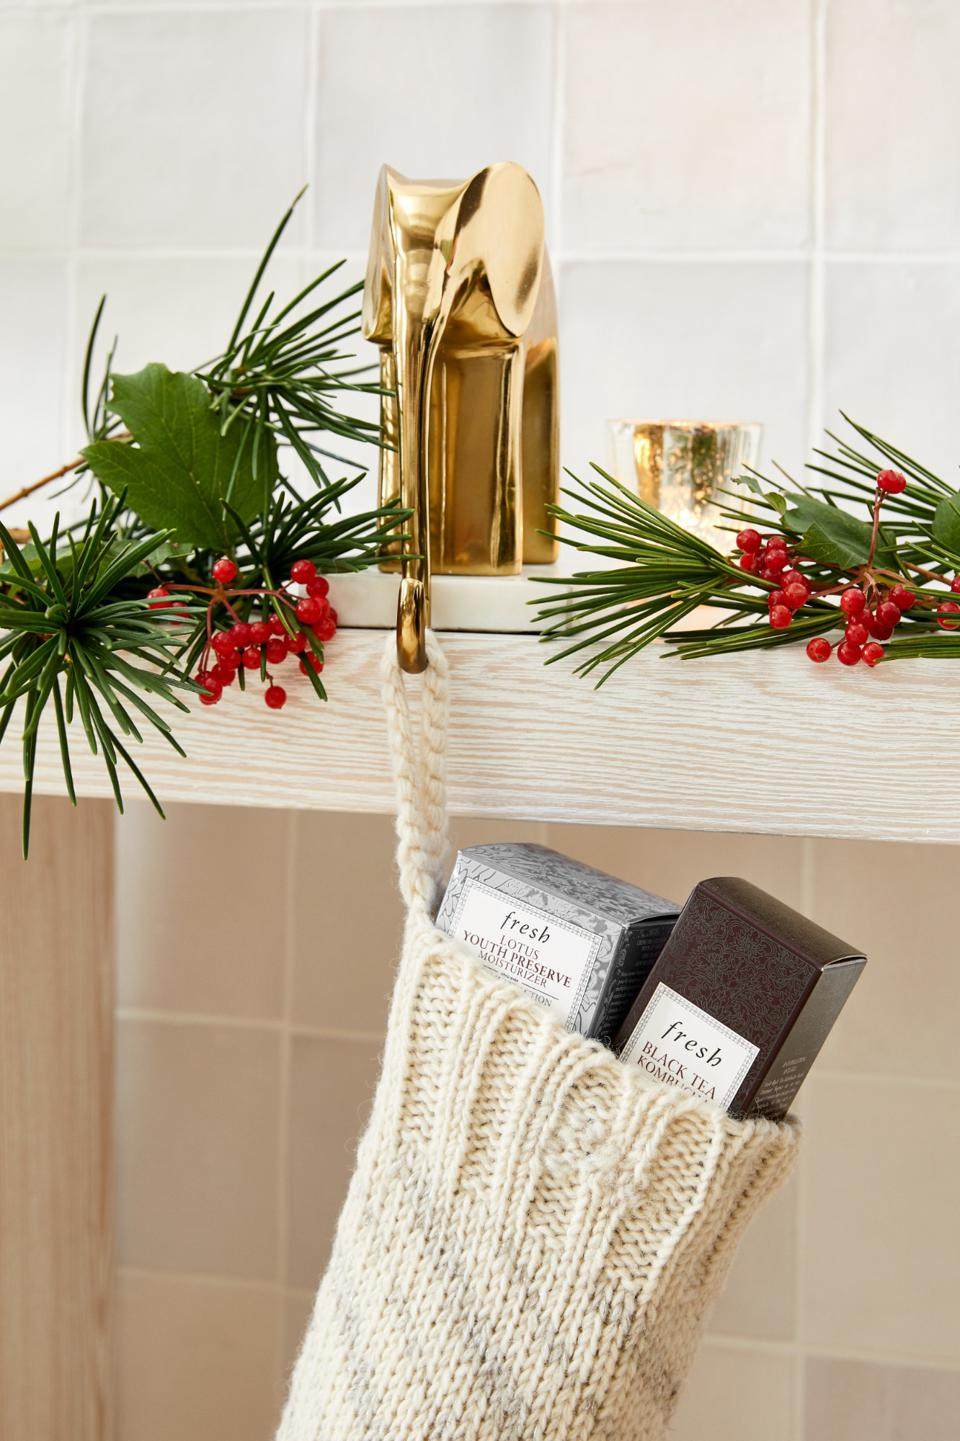 A couple of skincare stocking stuffers from Fresh